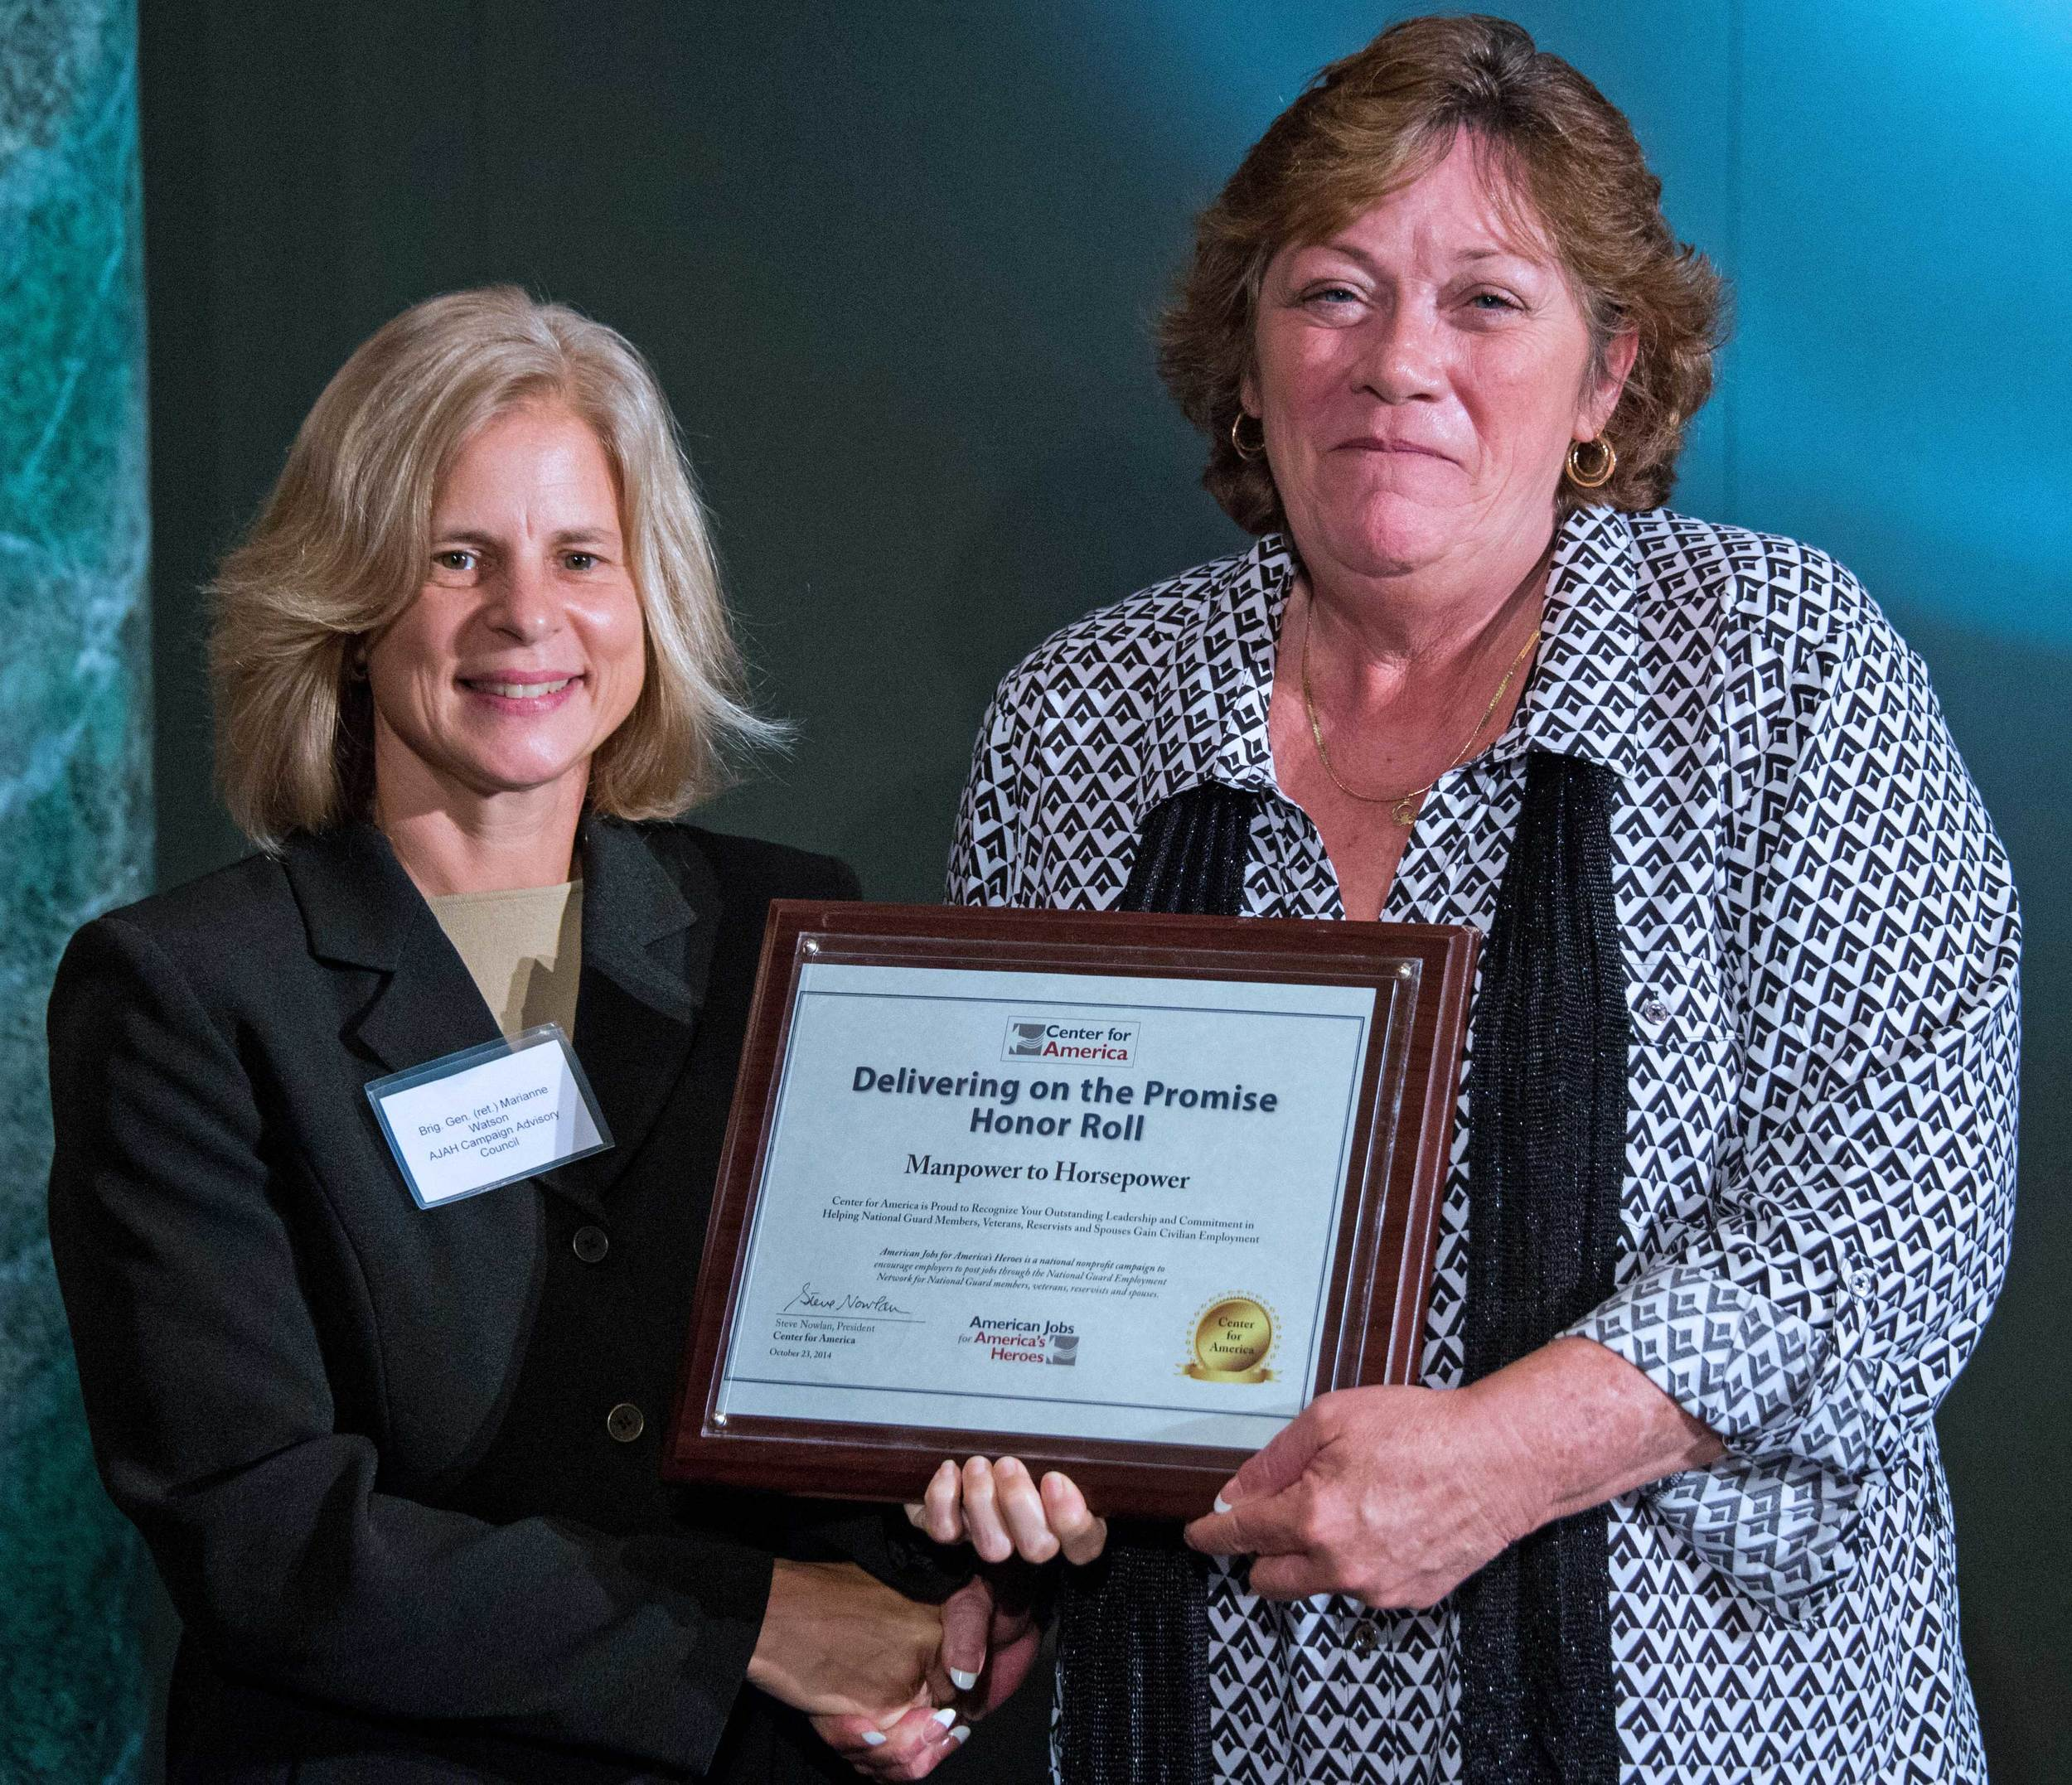 BG (ret) Marianne Watson presents the CFA Award to Sue Roberson, Founder and Director.